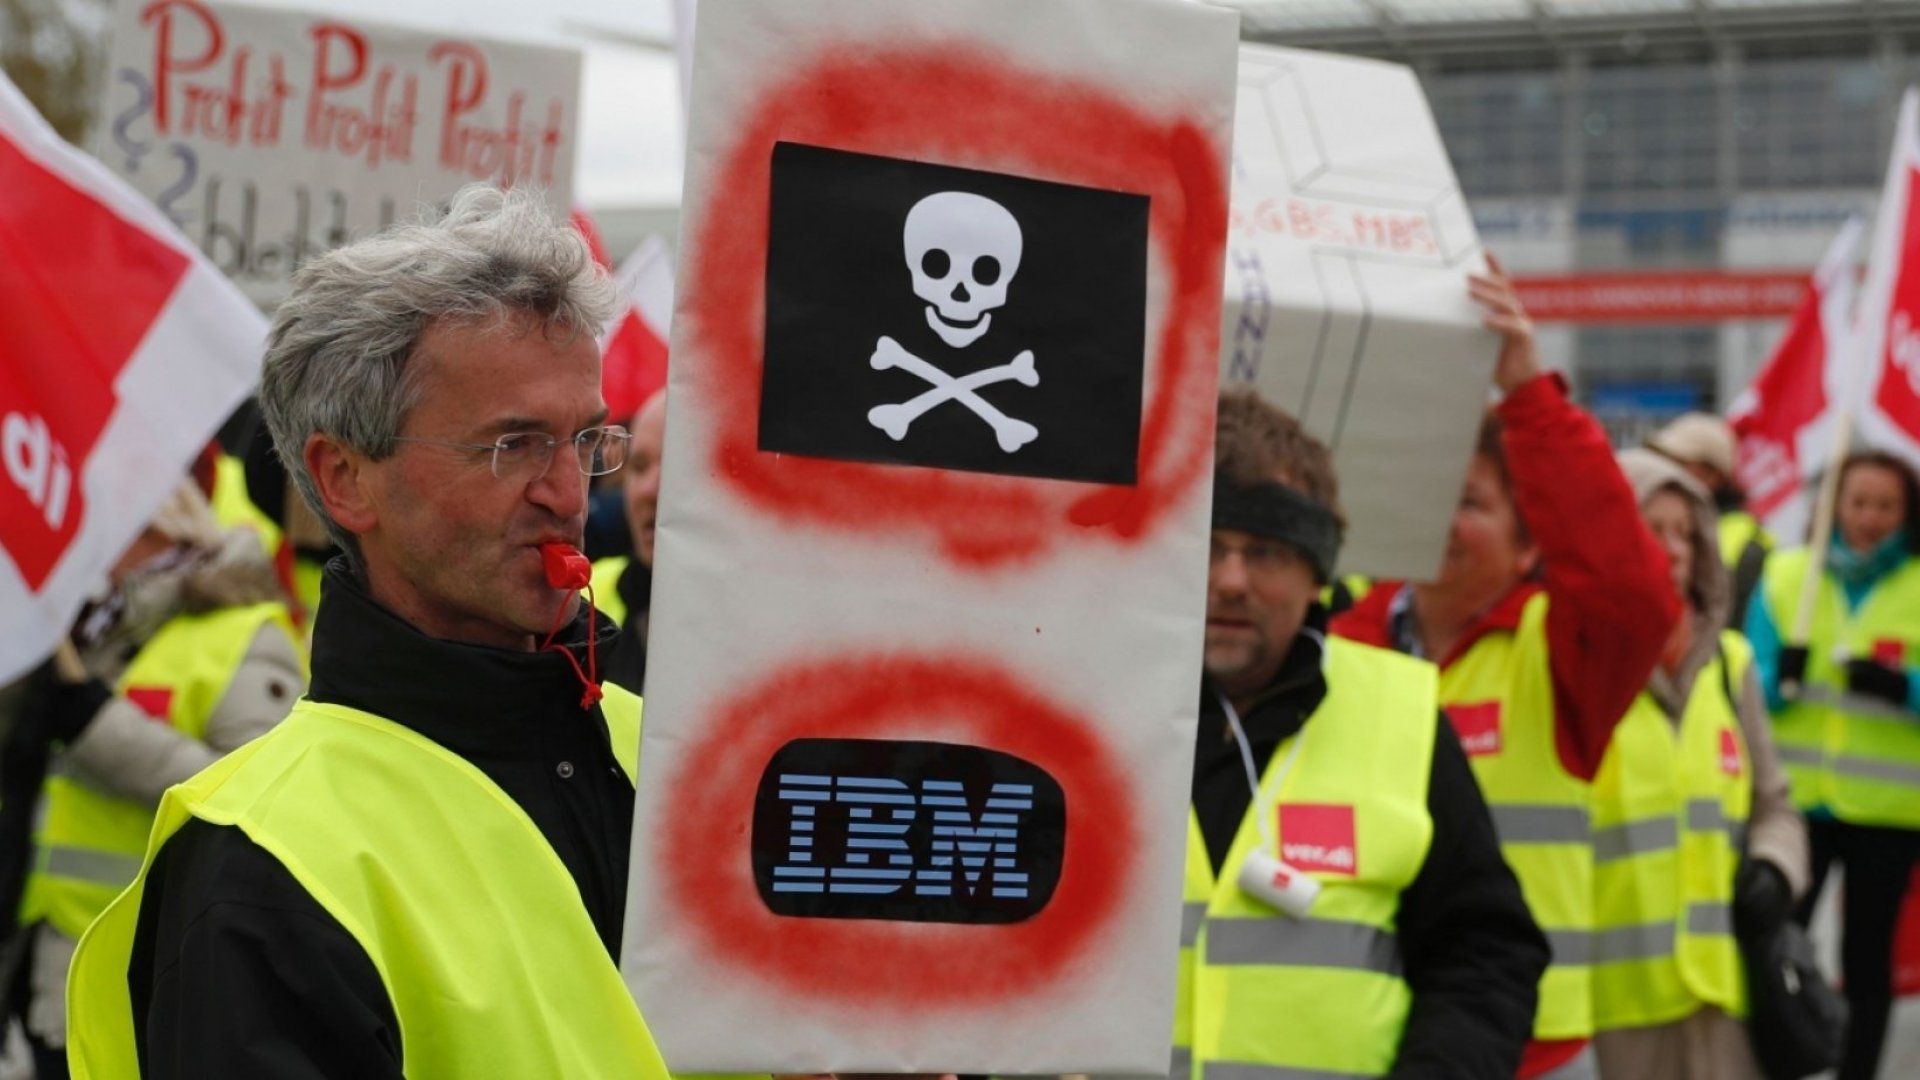 IBM Just Committed Cultural and Creative Suicide